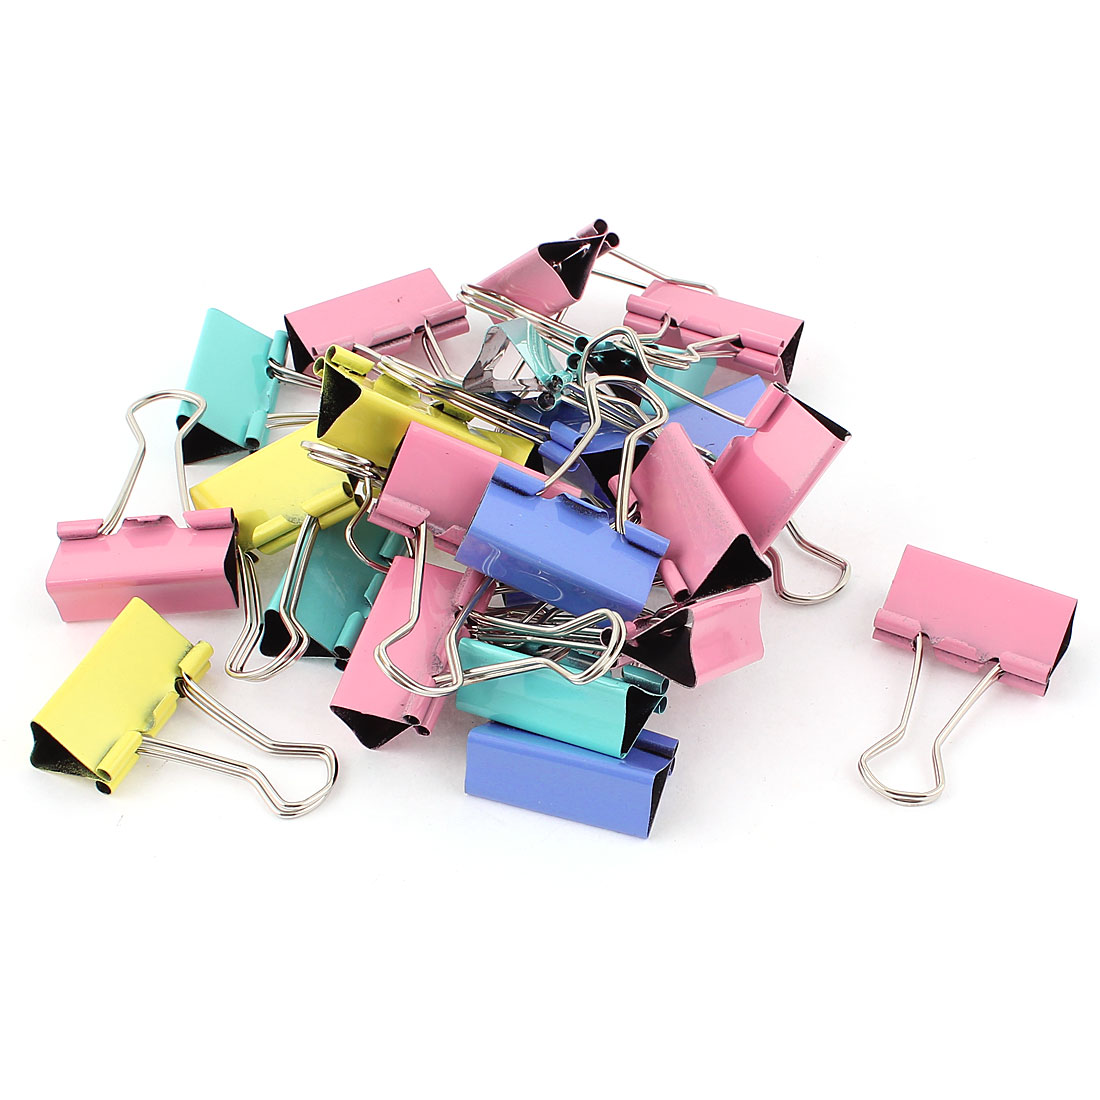 Office School Metal Clamp Binder Paper Clips Stationery Document Organize Assorted Color 24pcs